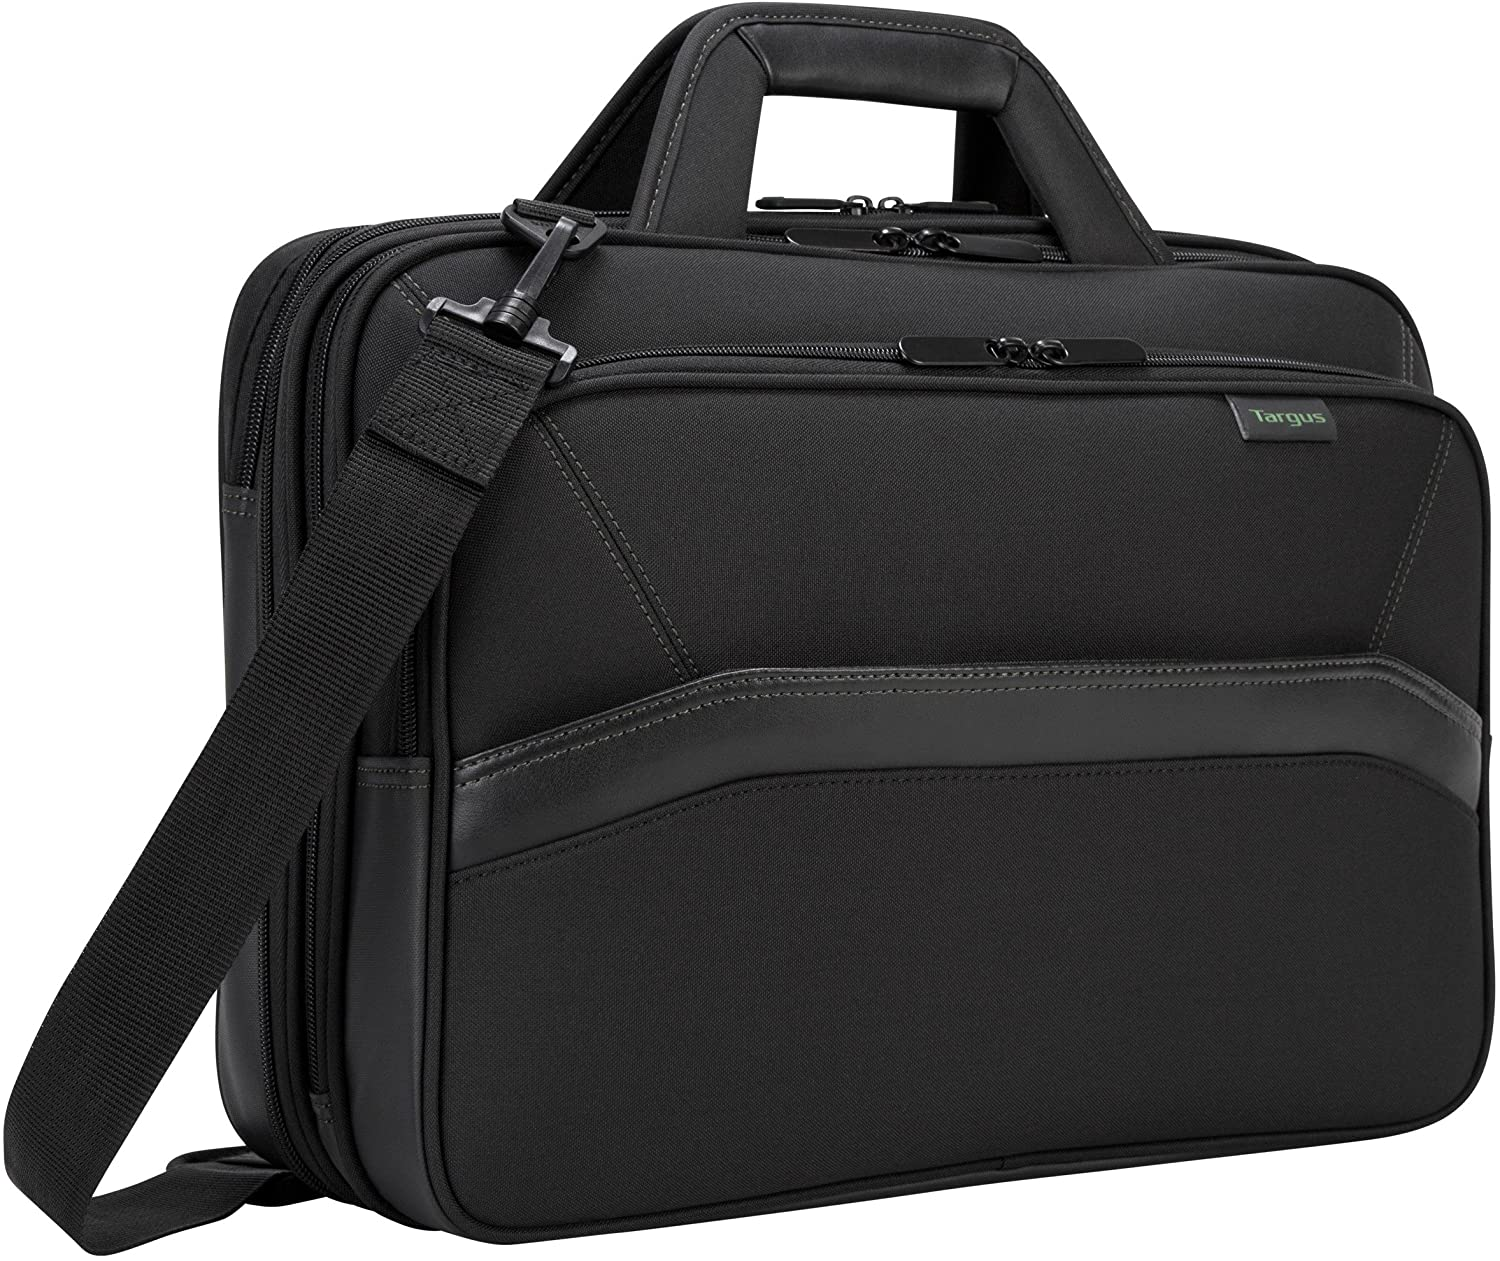 Targus Spruce EcoSmart Checkpoint-Friendly Laptop Bag for 15.6-Inch Laptops, Black (TBT256)